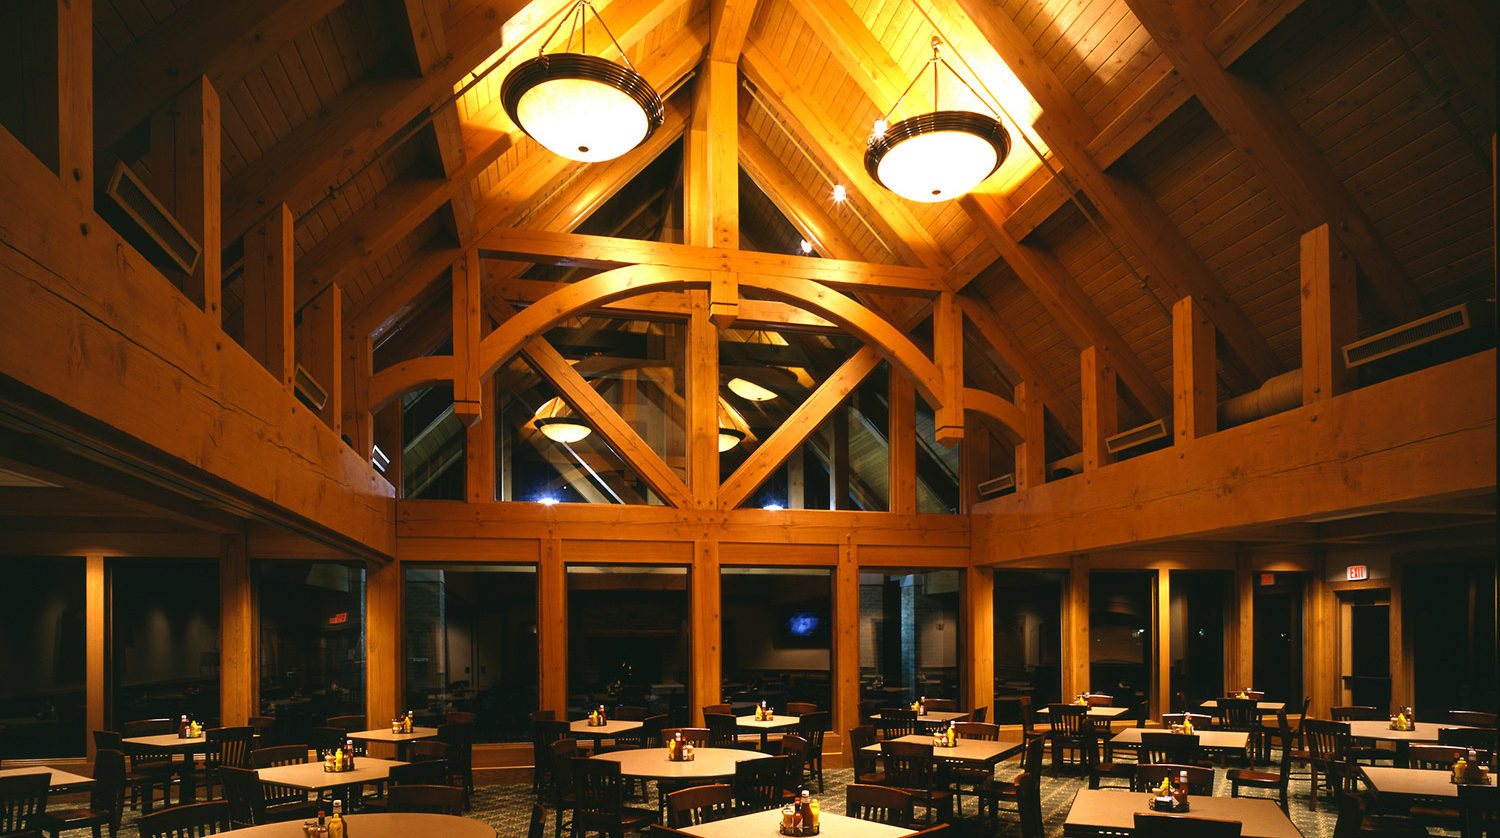 Wilmette Park District Golf Clubhouse dining room